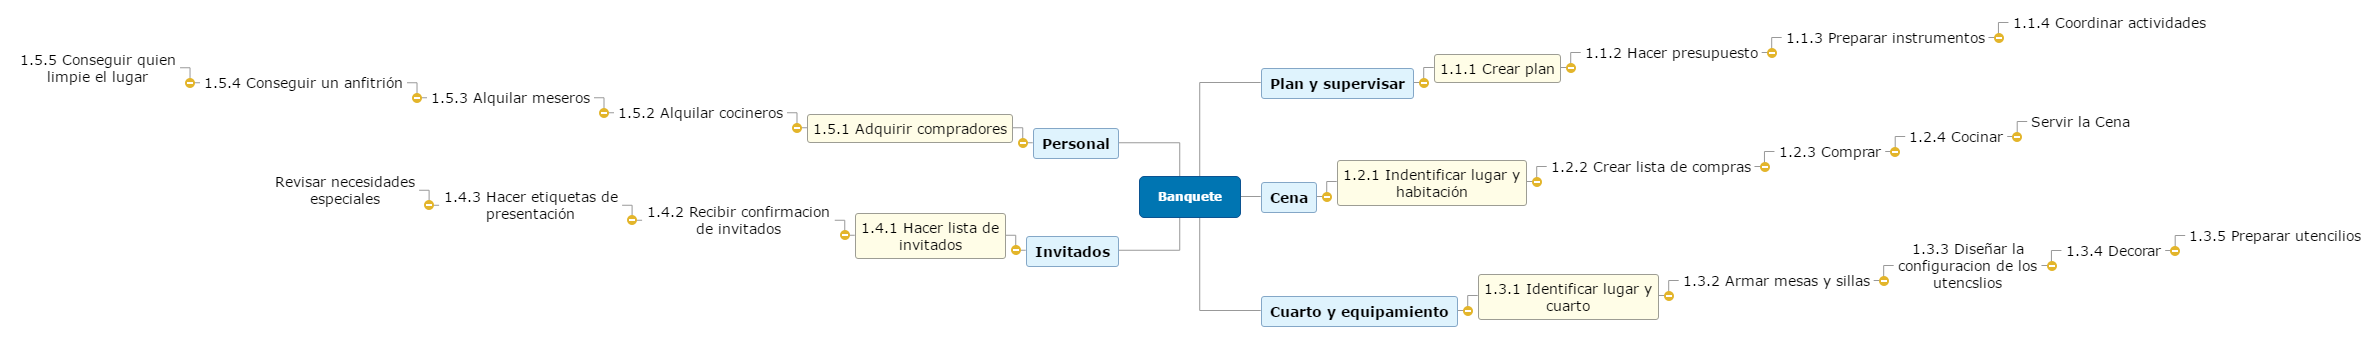 Banquetee Mind Map